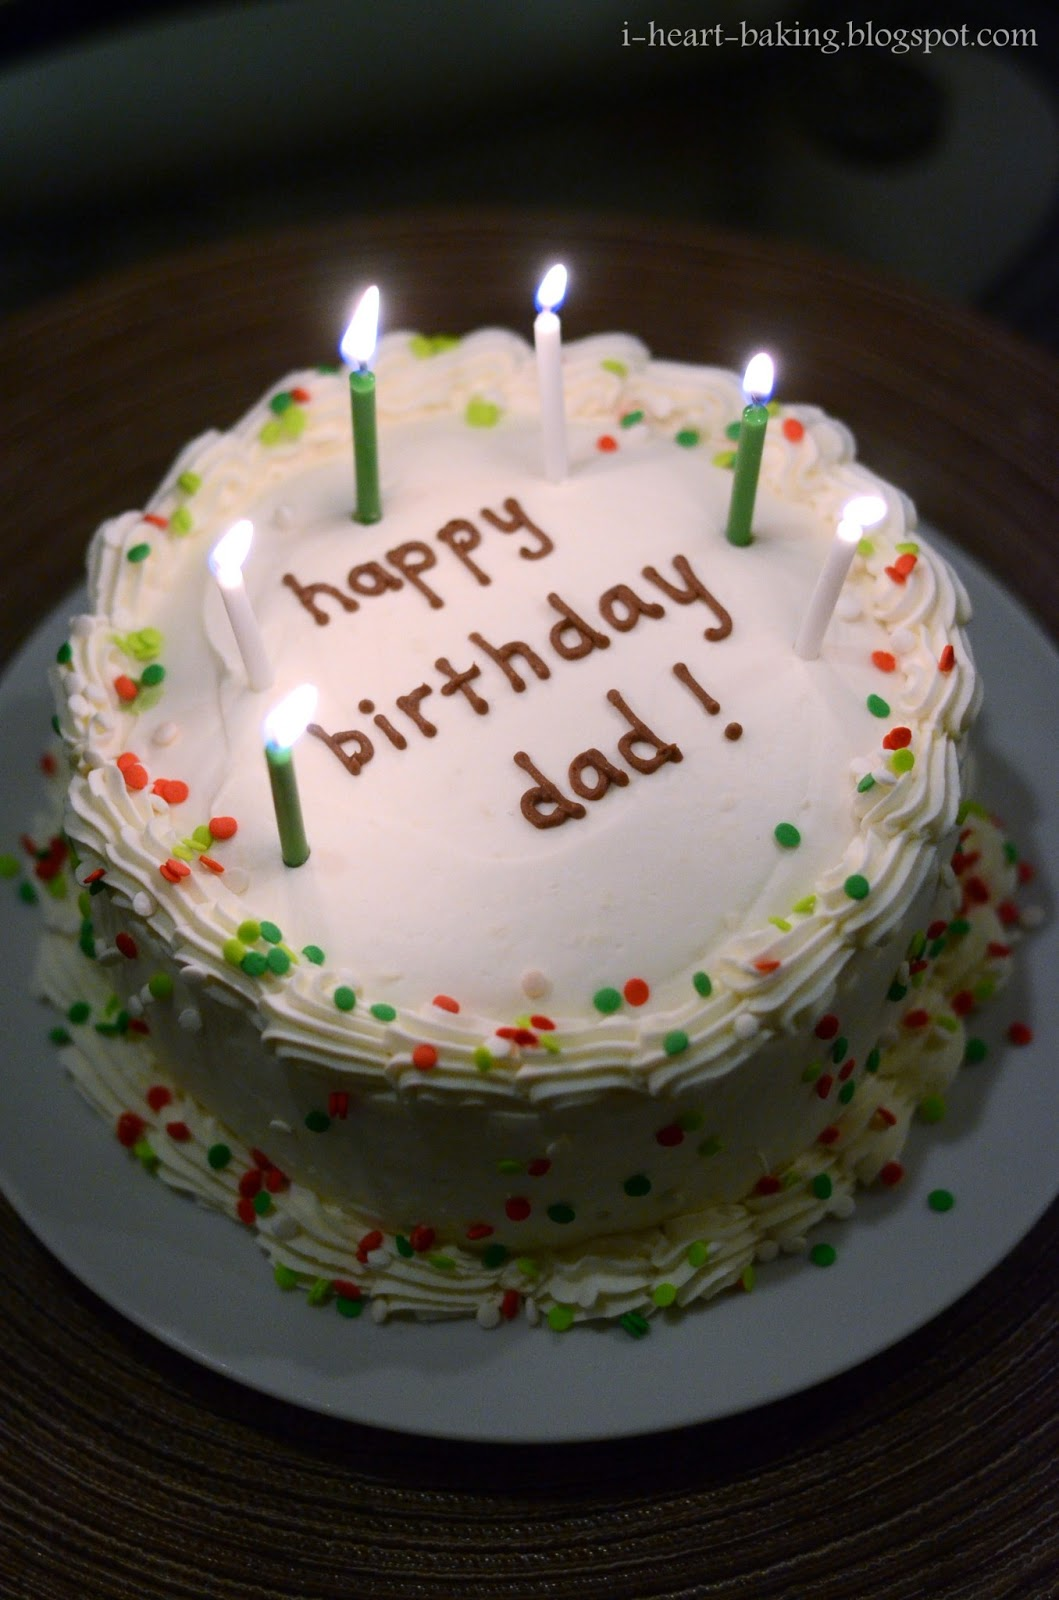 Delightful Holiday Birthday Ice Cream Cake